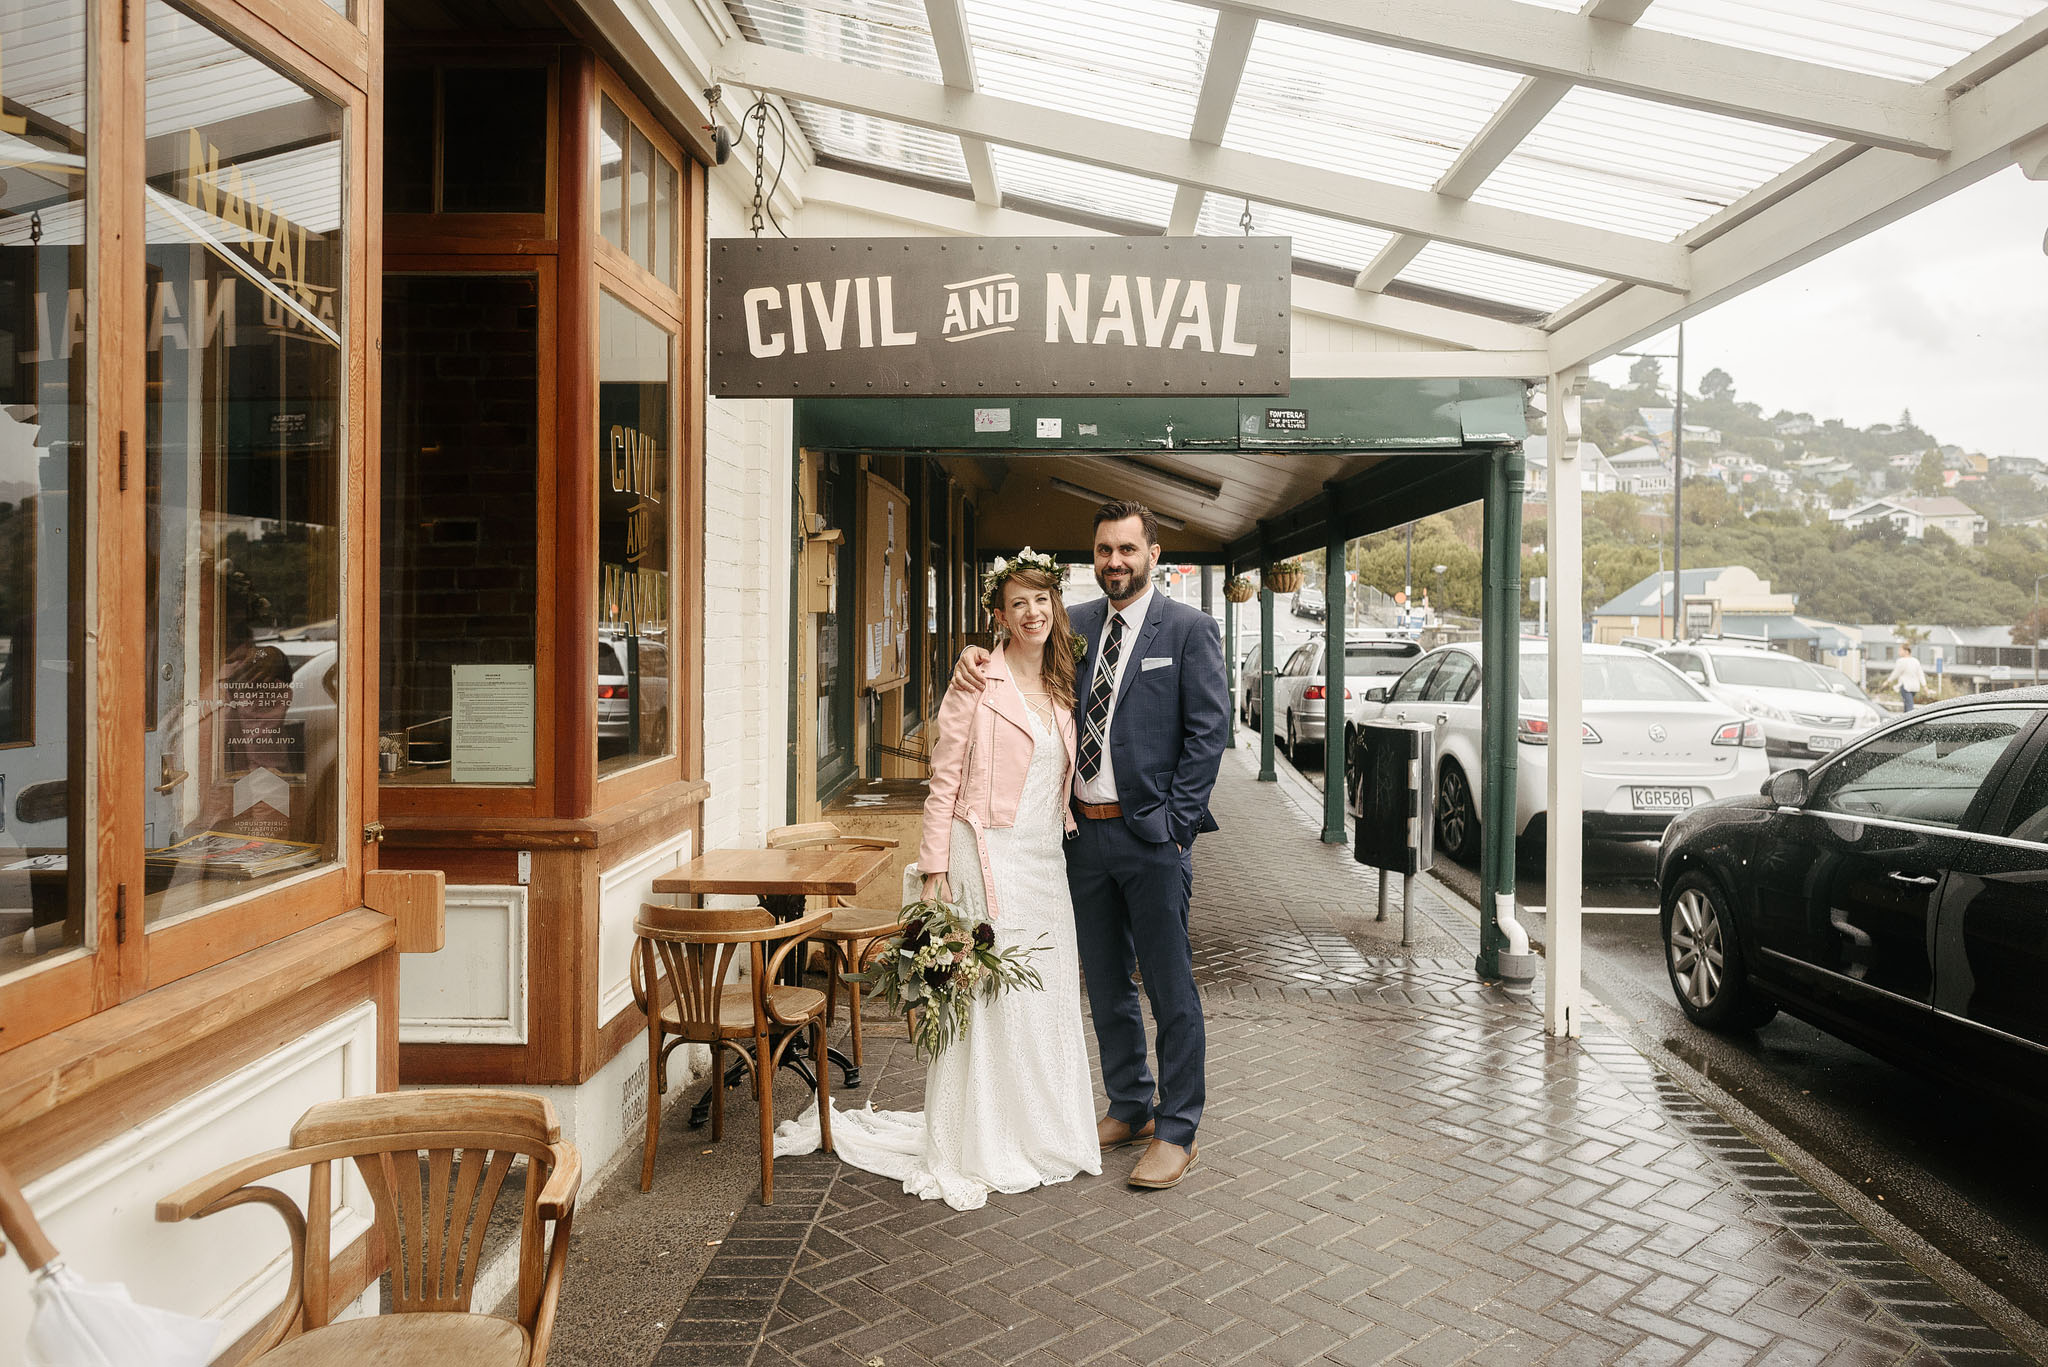 Outside Civil and Naval